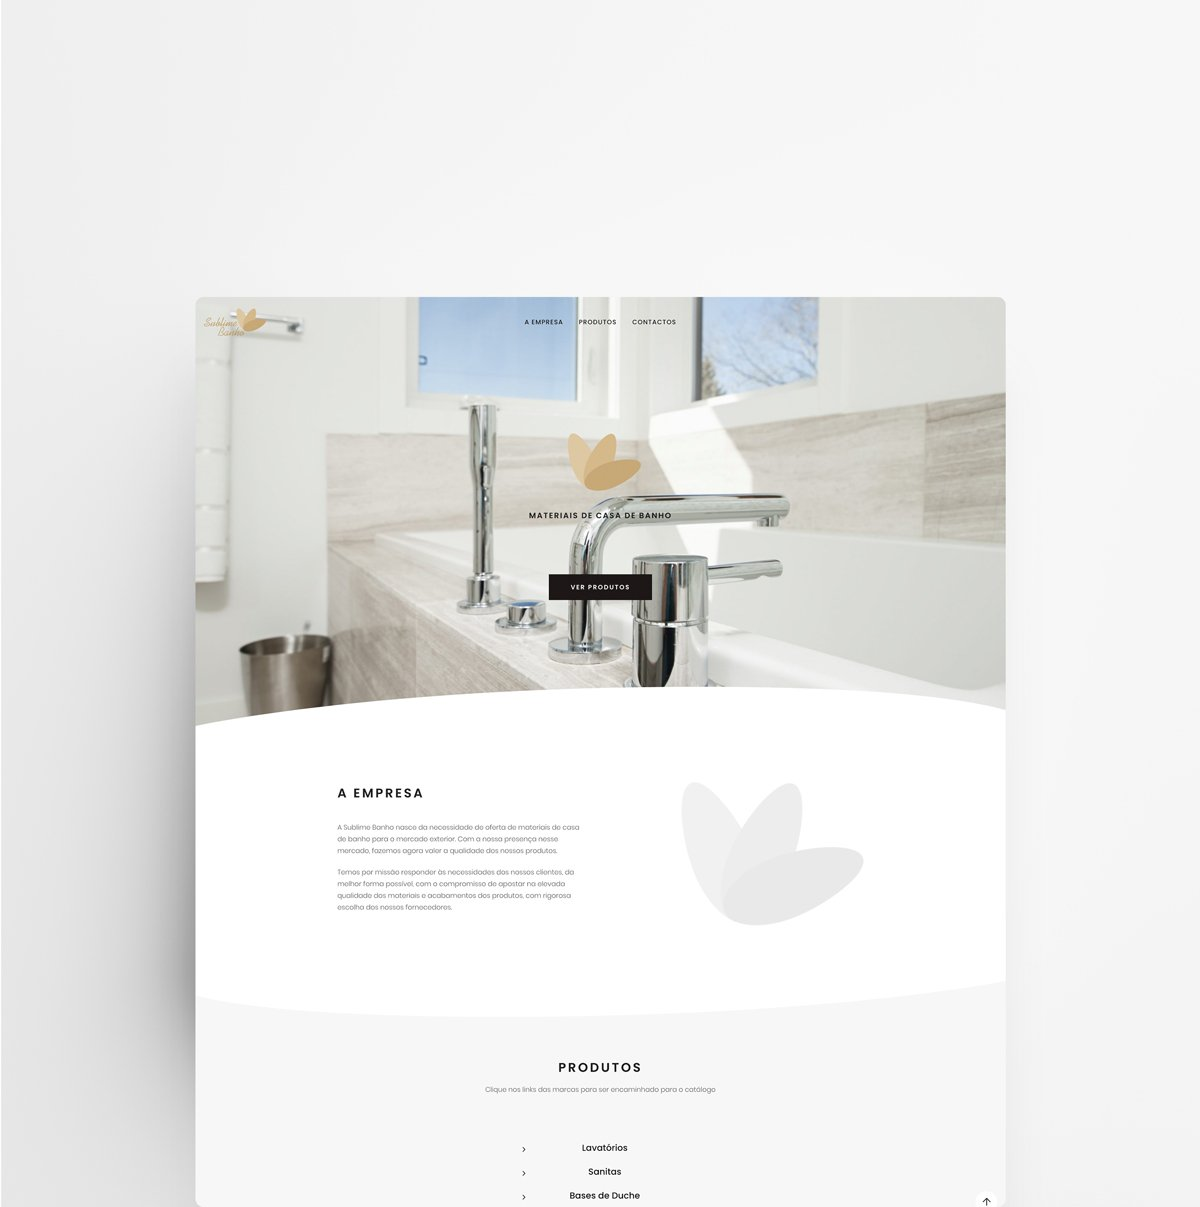 Web Design and Development - Sublime Banho | Web Designer - João Santos